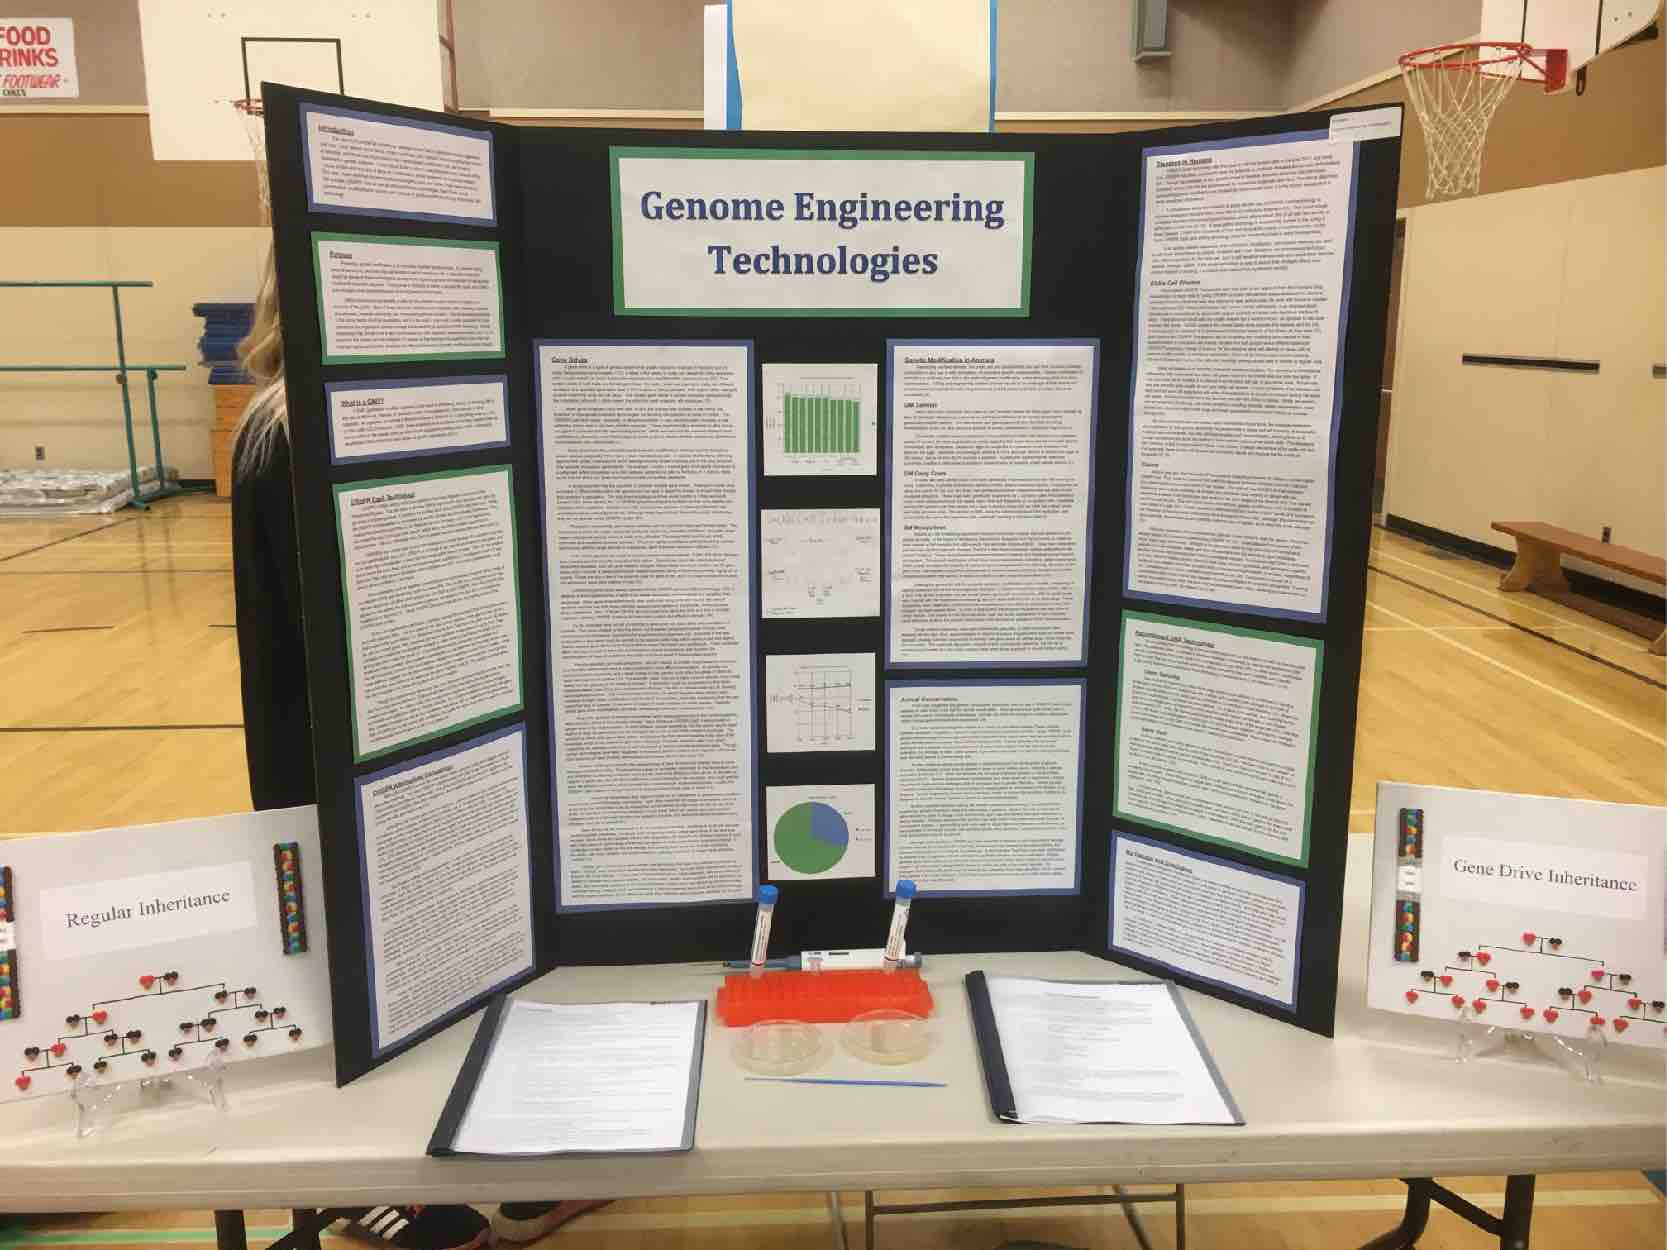 Science fair poster board explaining gene editing